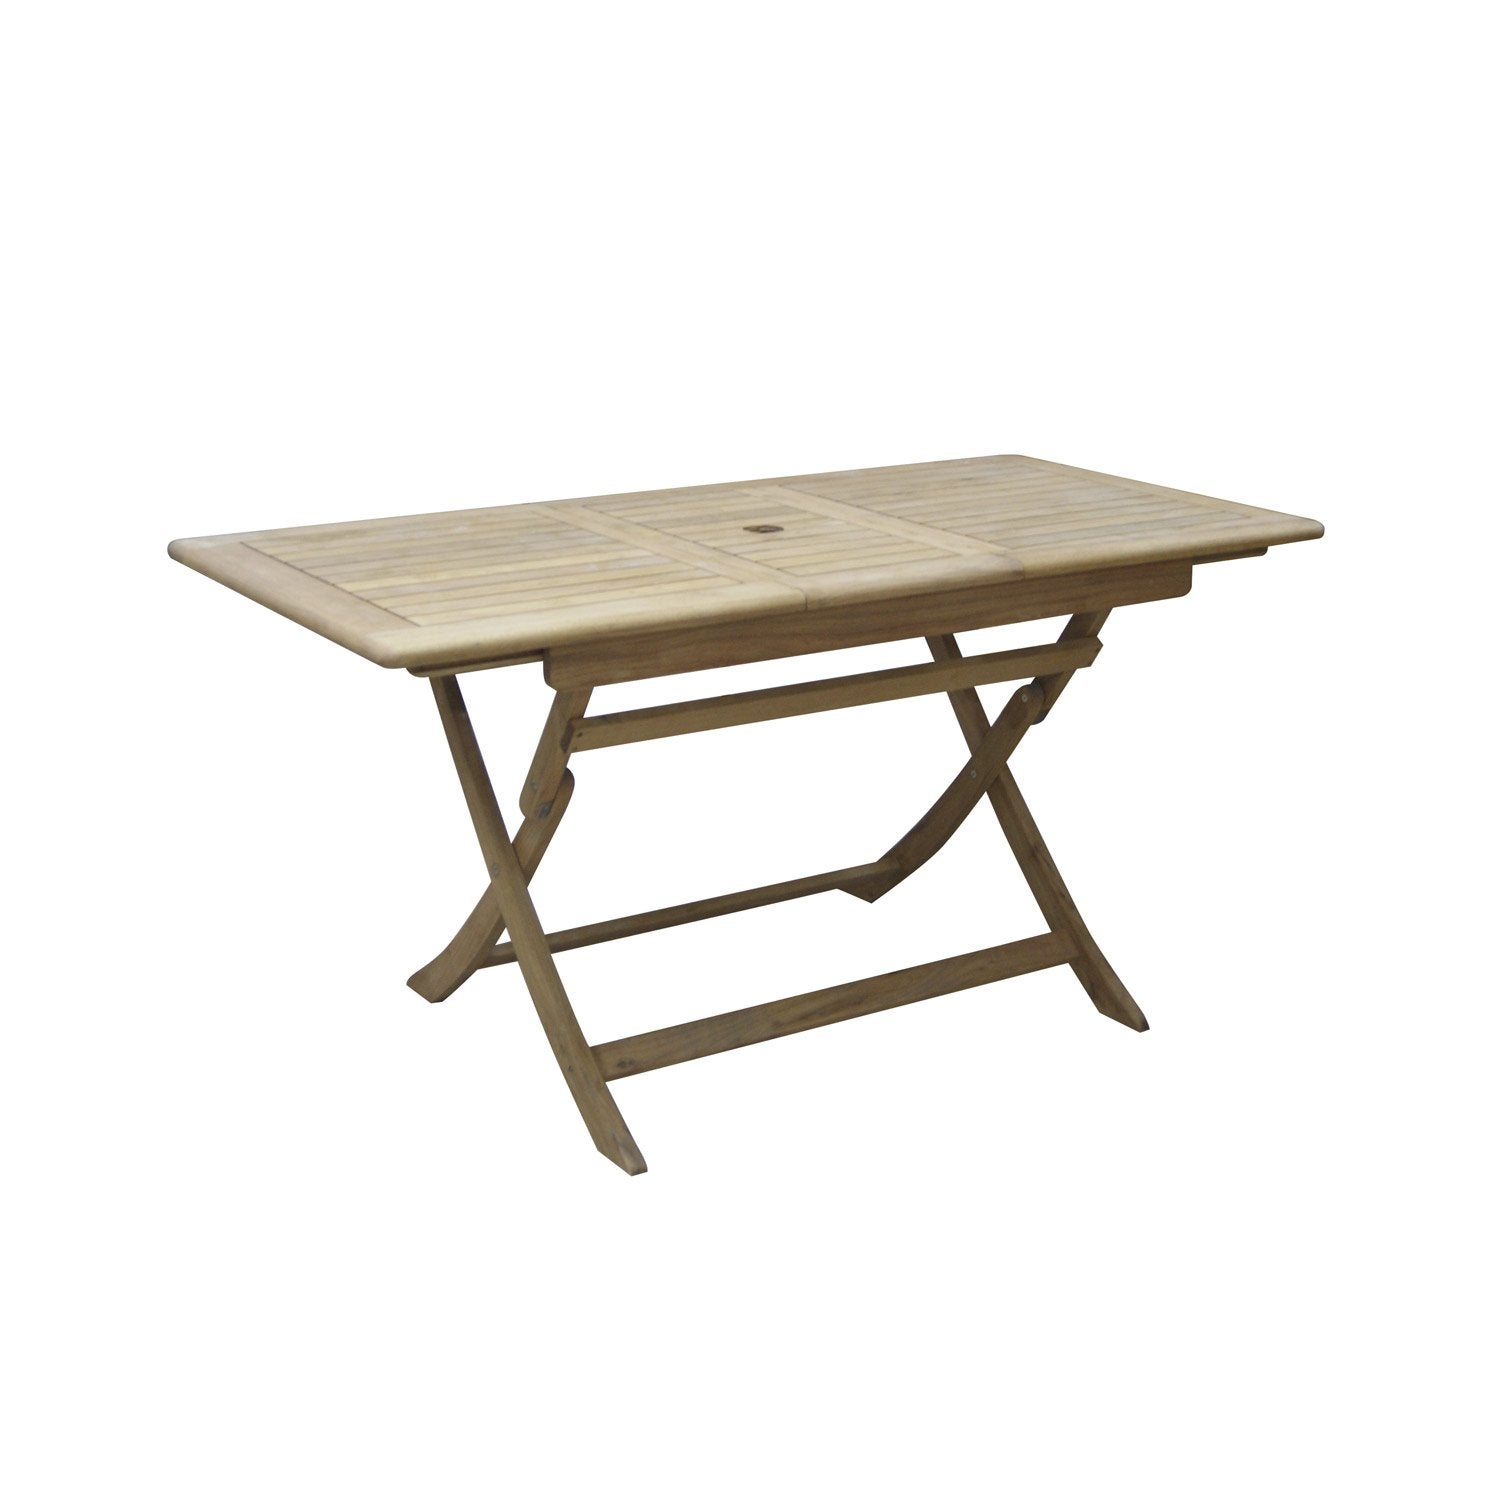 Salon de jardin bois table pliante for Table de jardin pliante